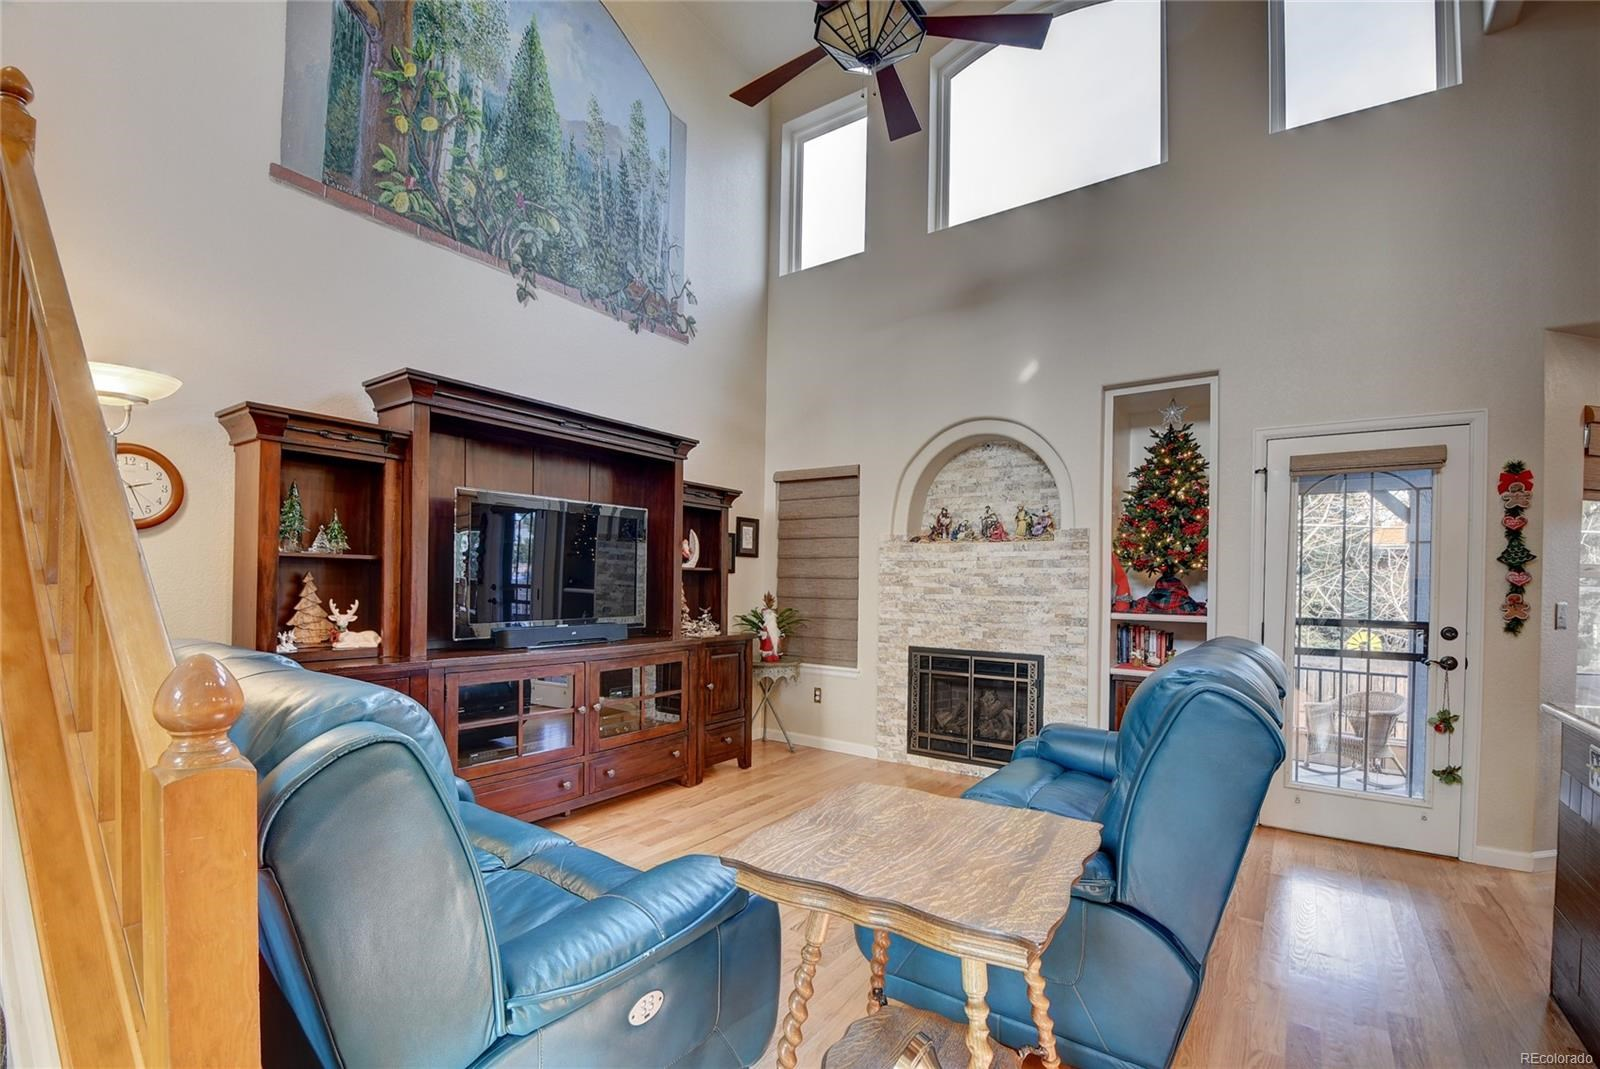 MLS# 9913436 - 7 - 5726 W 81st Place, Arvada, CO 80003